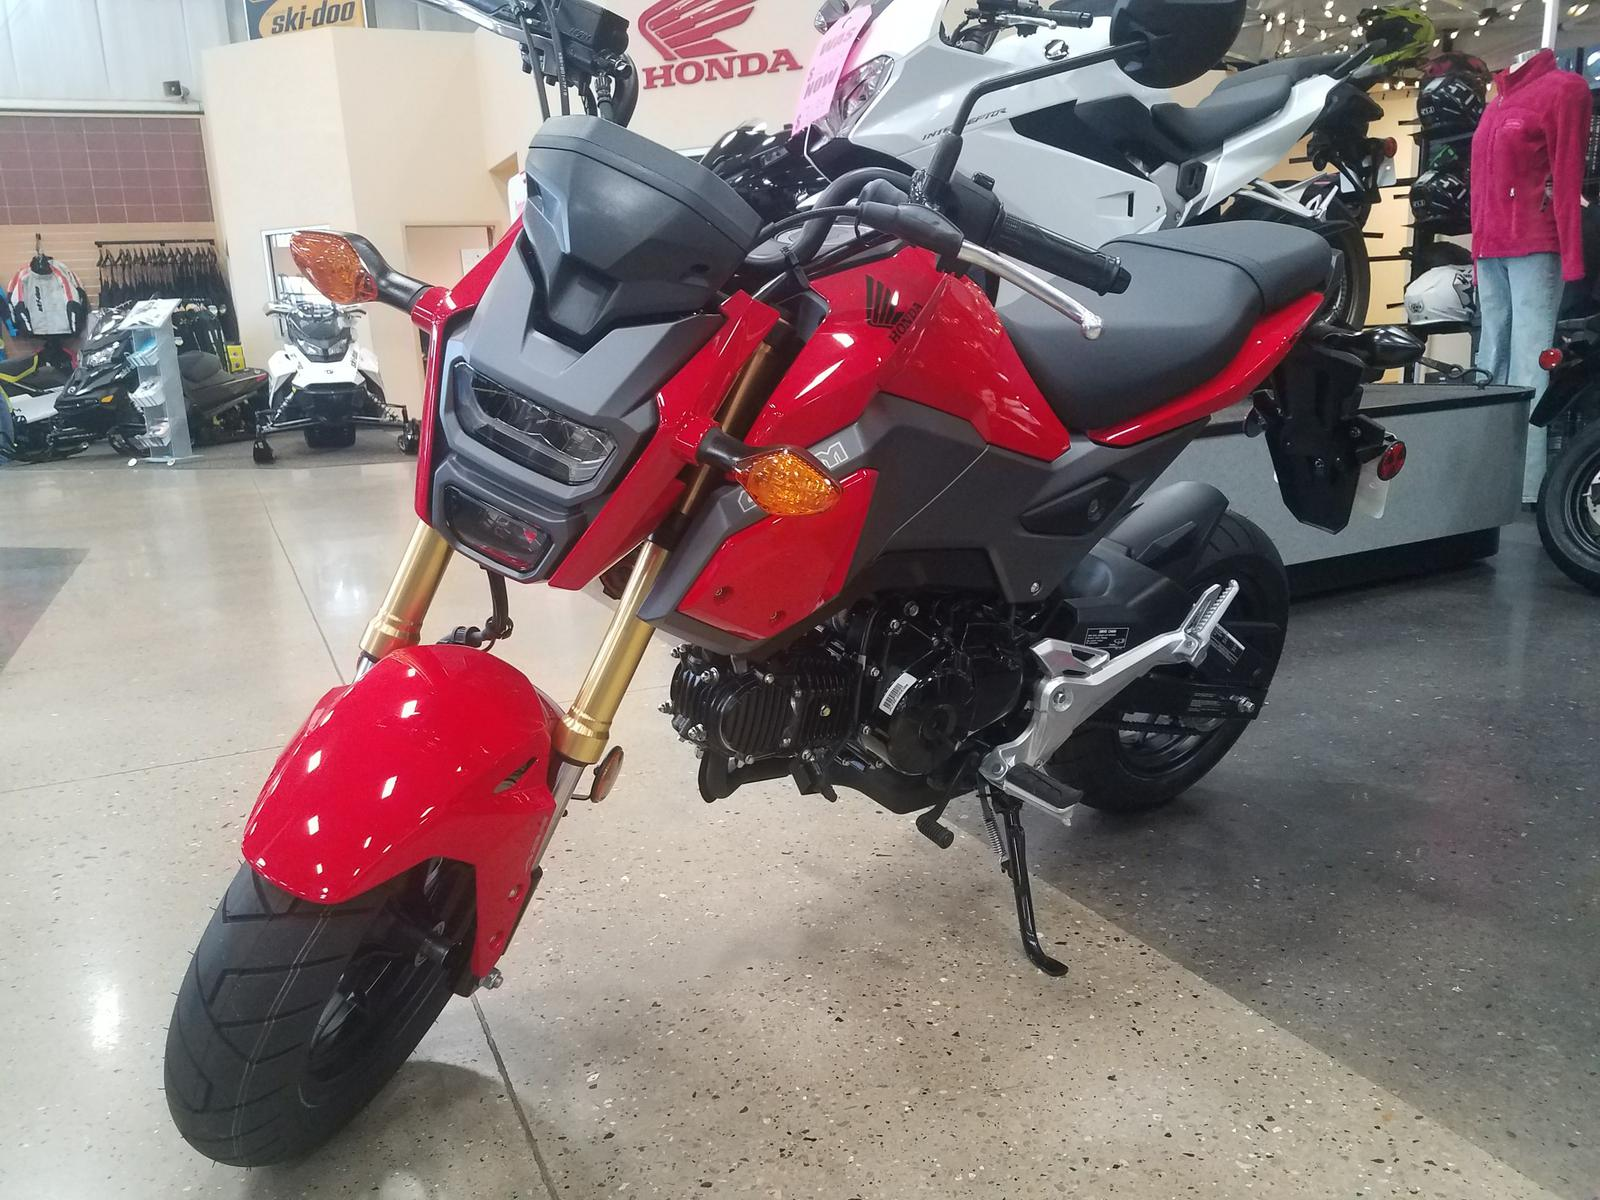 New Inventory from Ski-Doo and Honda Mad City Power Sports Deforest